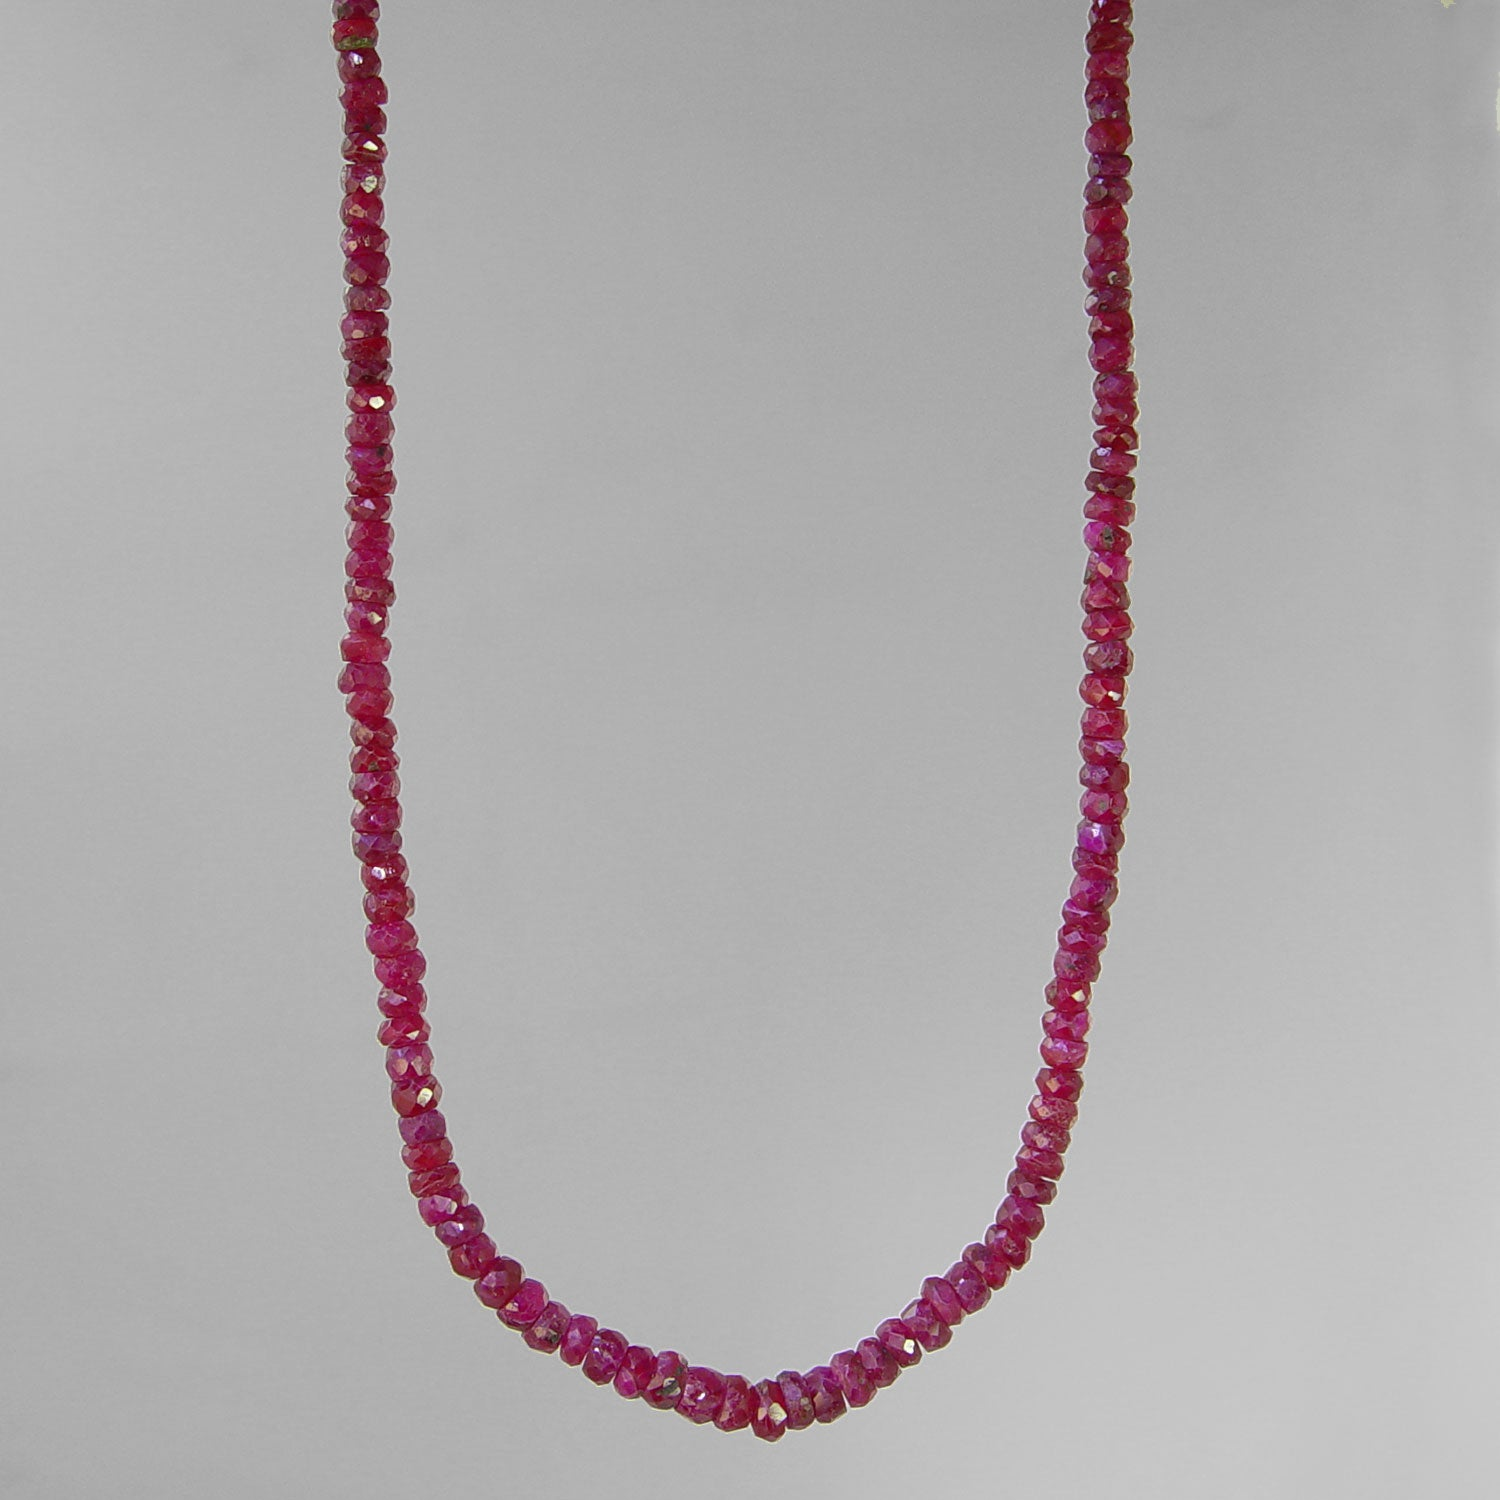 "Ruby Small Faceted Rondelle Graduated 17"" Necklace, 35 ct"